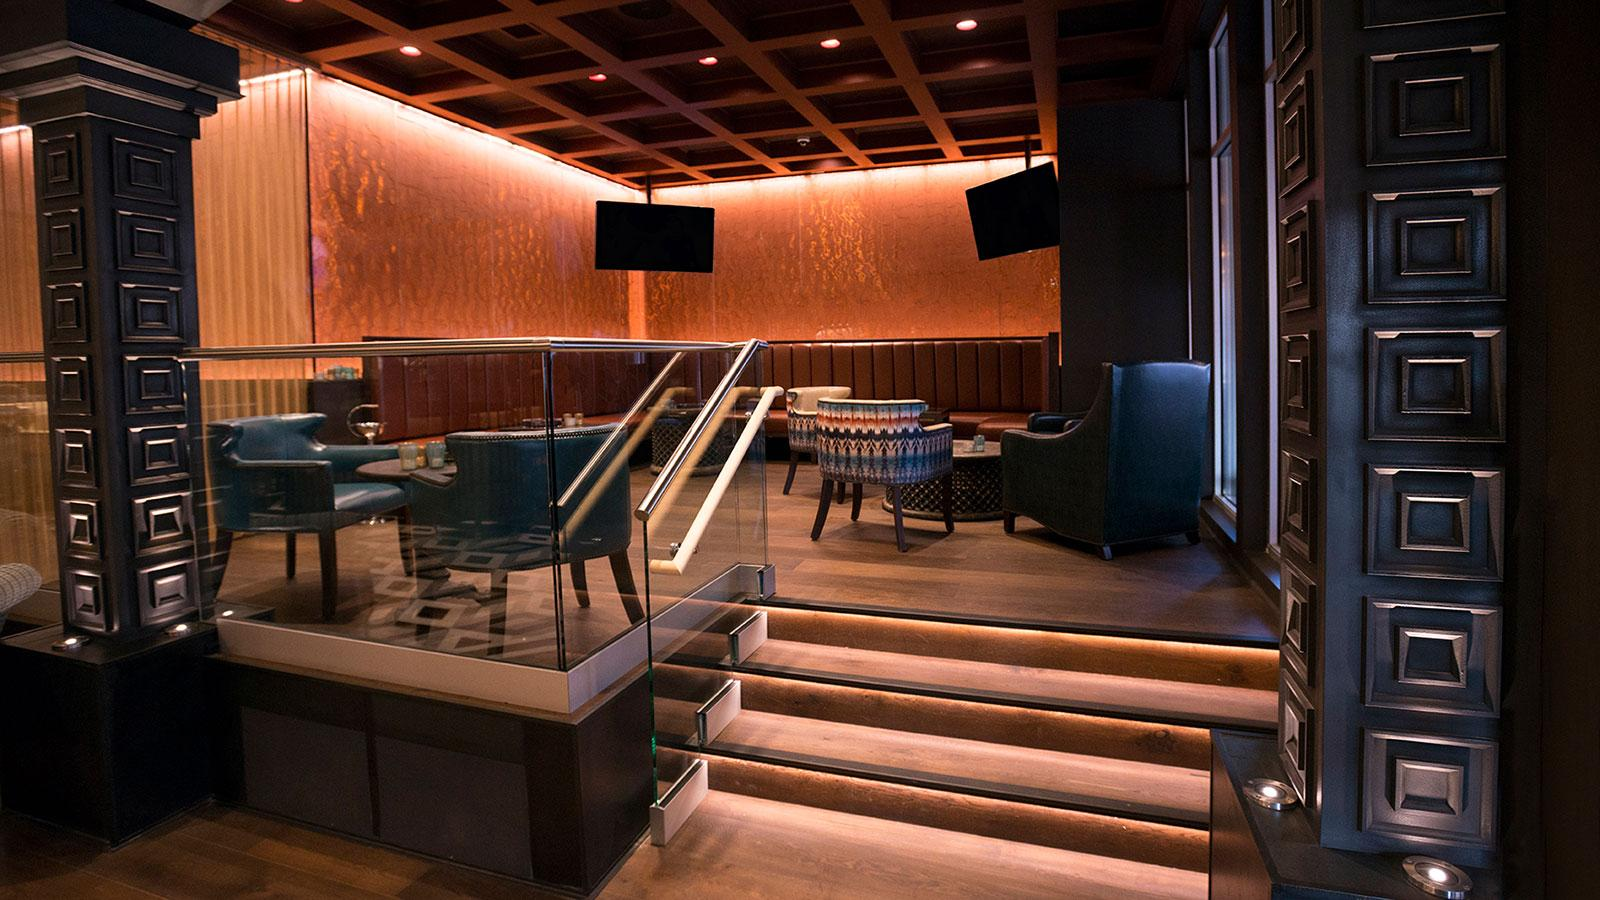 Patel's new Pittsburgh venue can best be described as an upscale, cigar-friendly lounge with the feel of a nightclub.